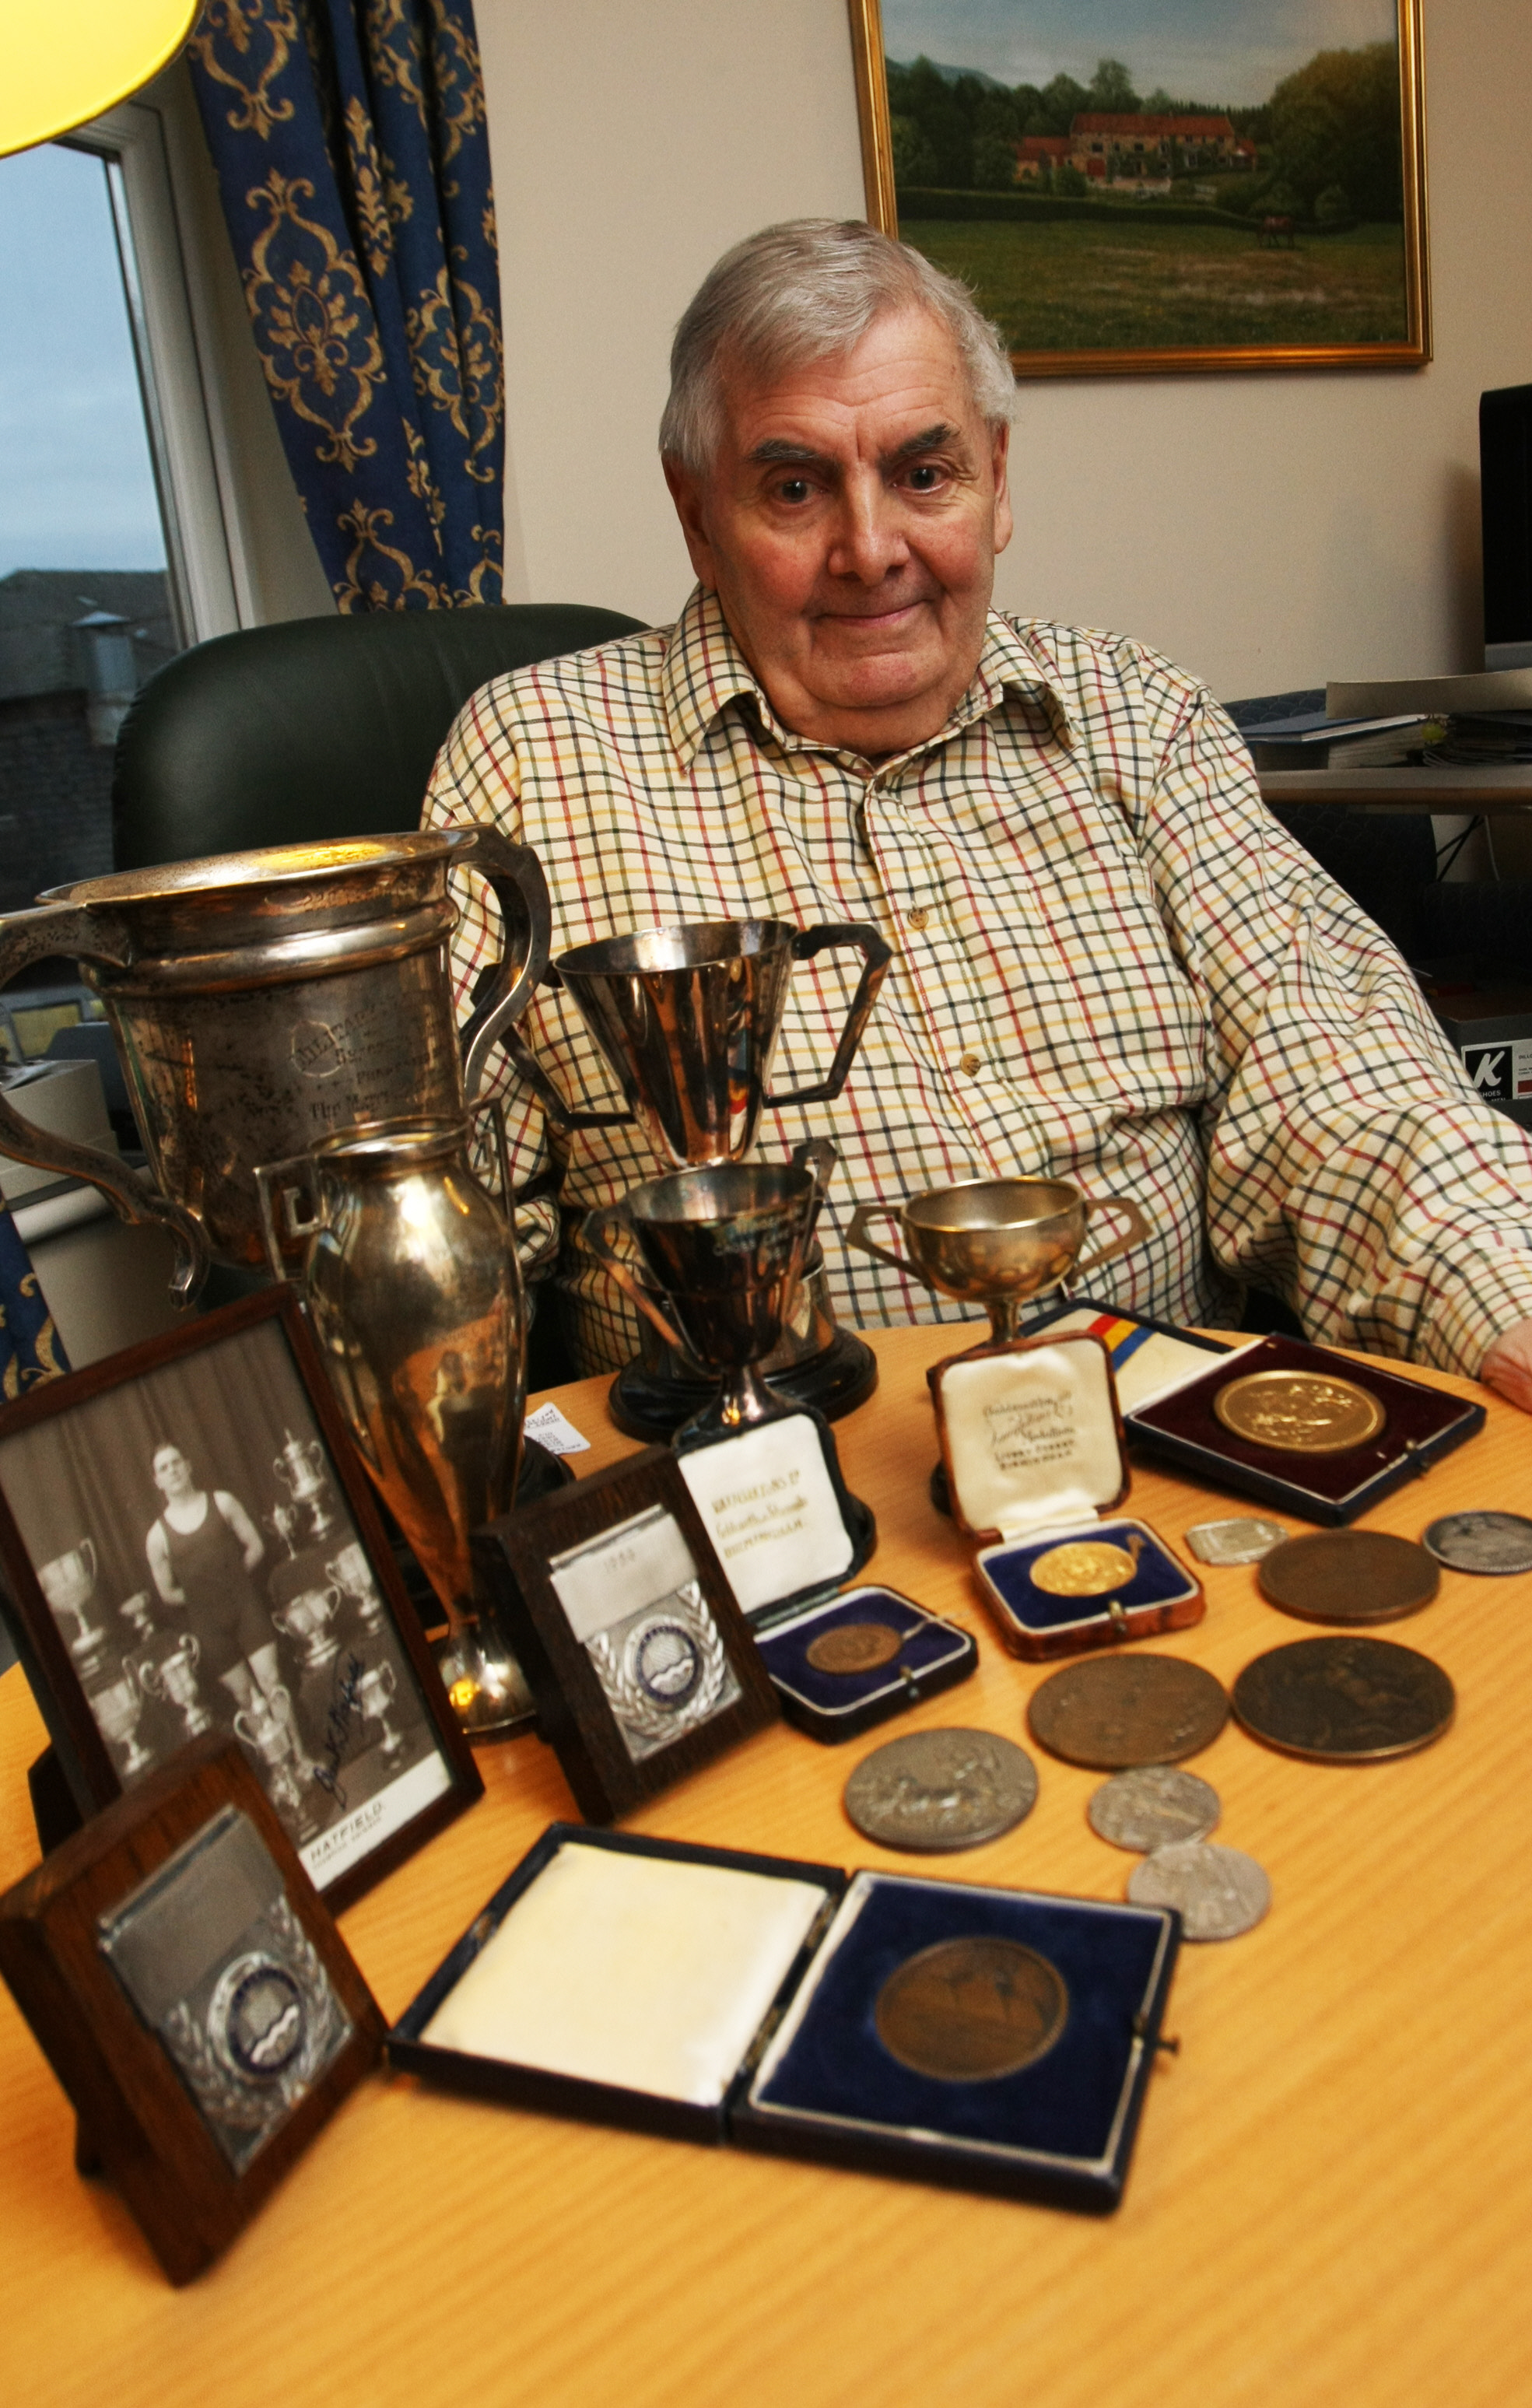 Jack Hatfield with some of the medals he and his father won.